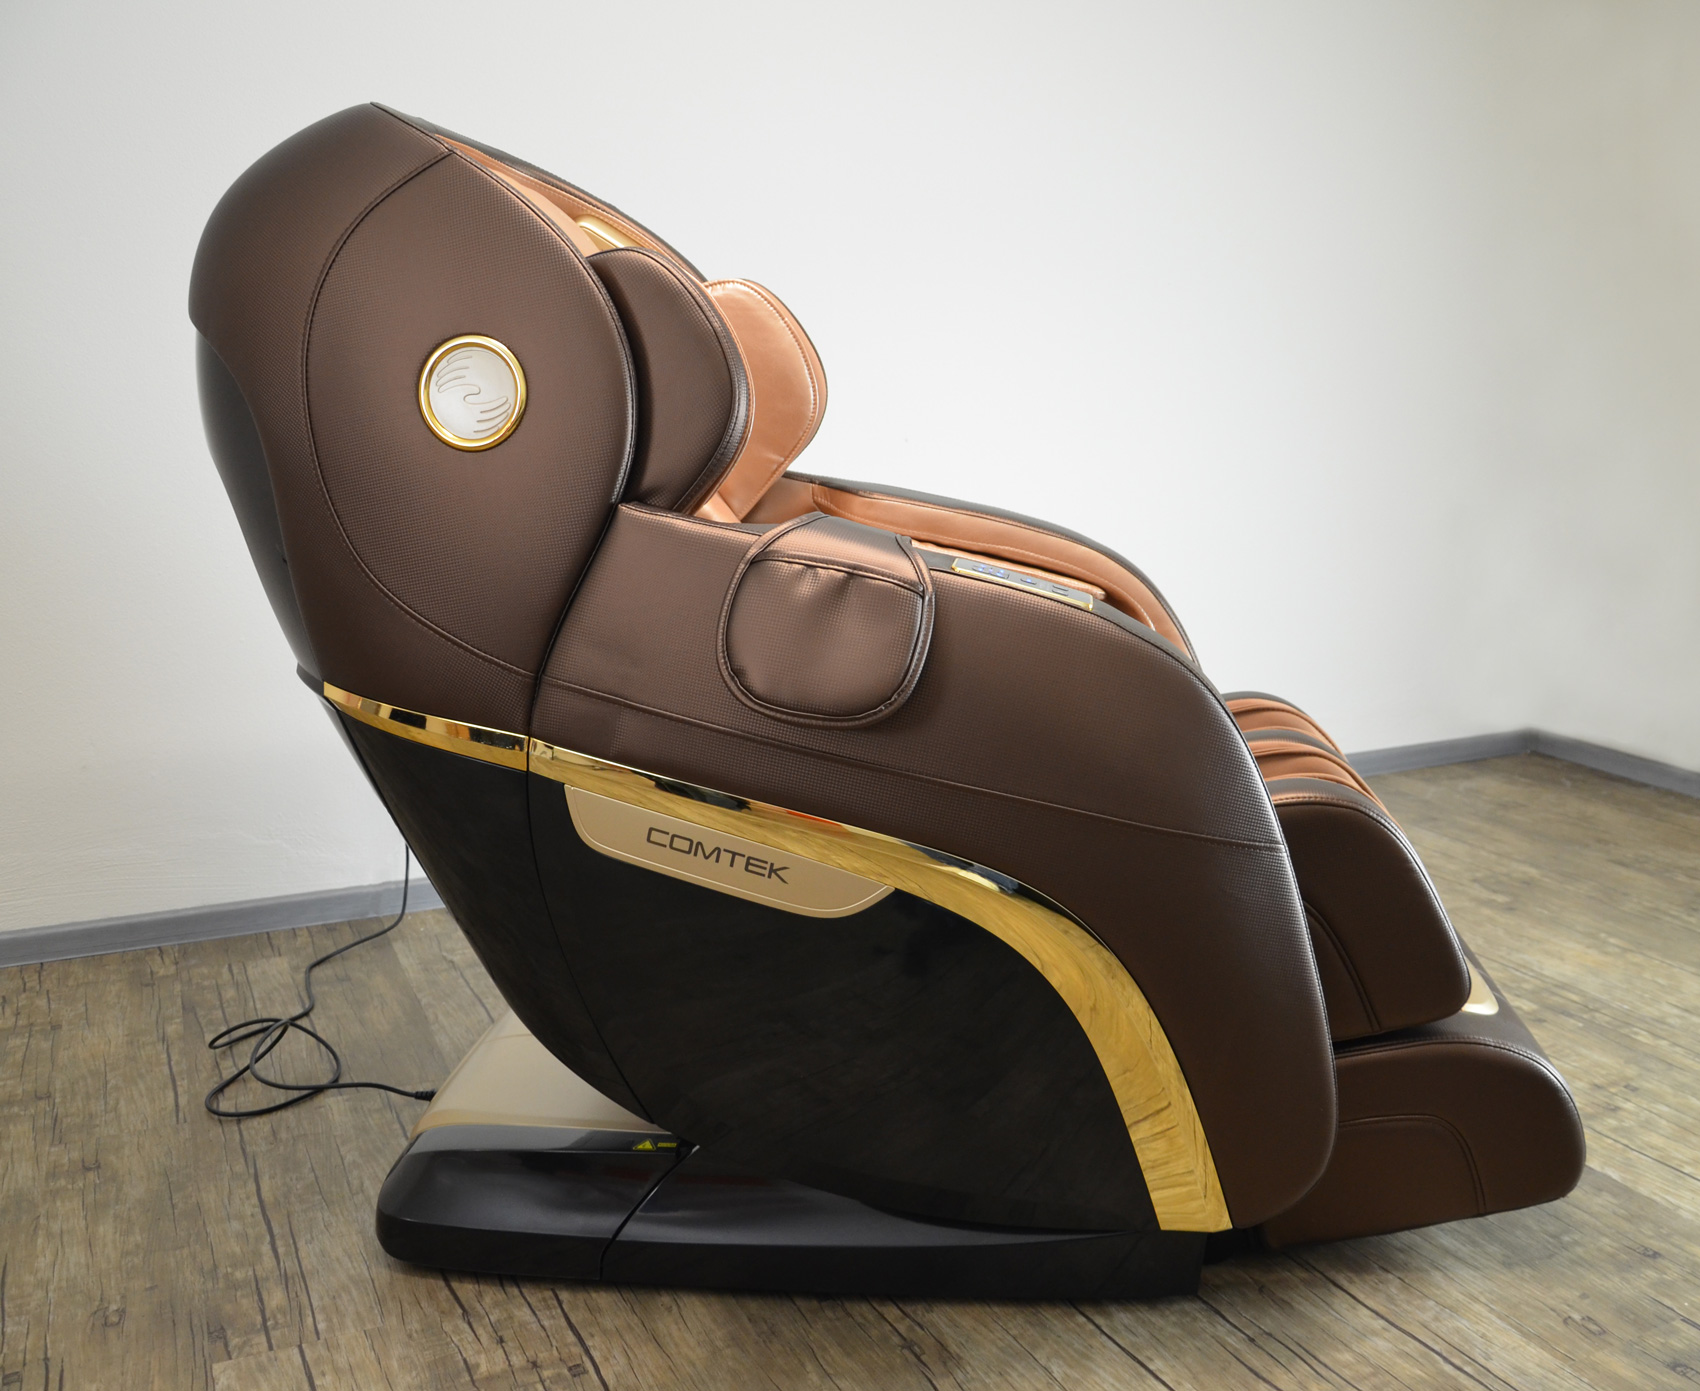 comtek massage chair wing dining room chairs md a890s maddiamond luxury a890